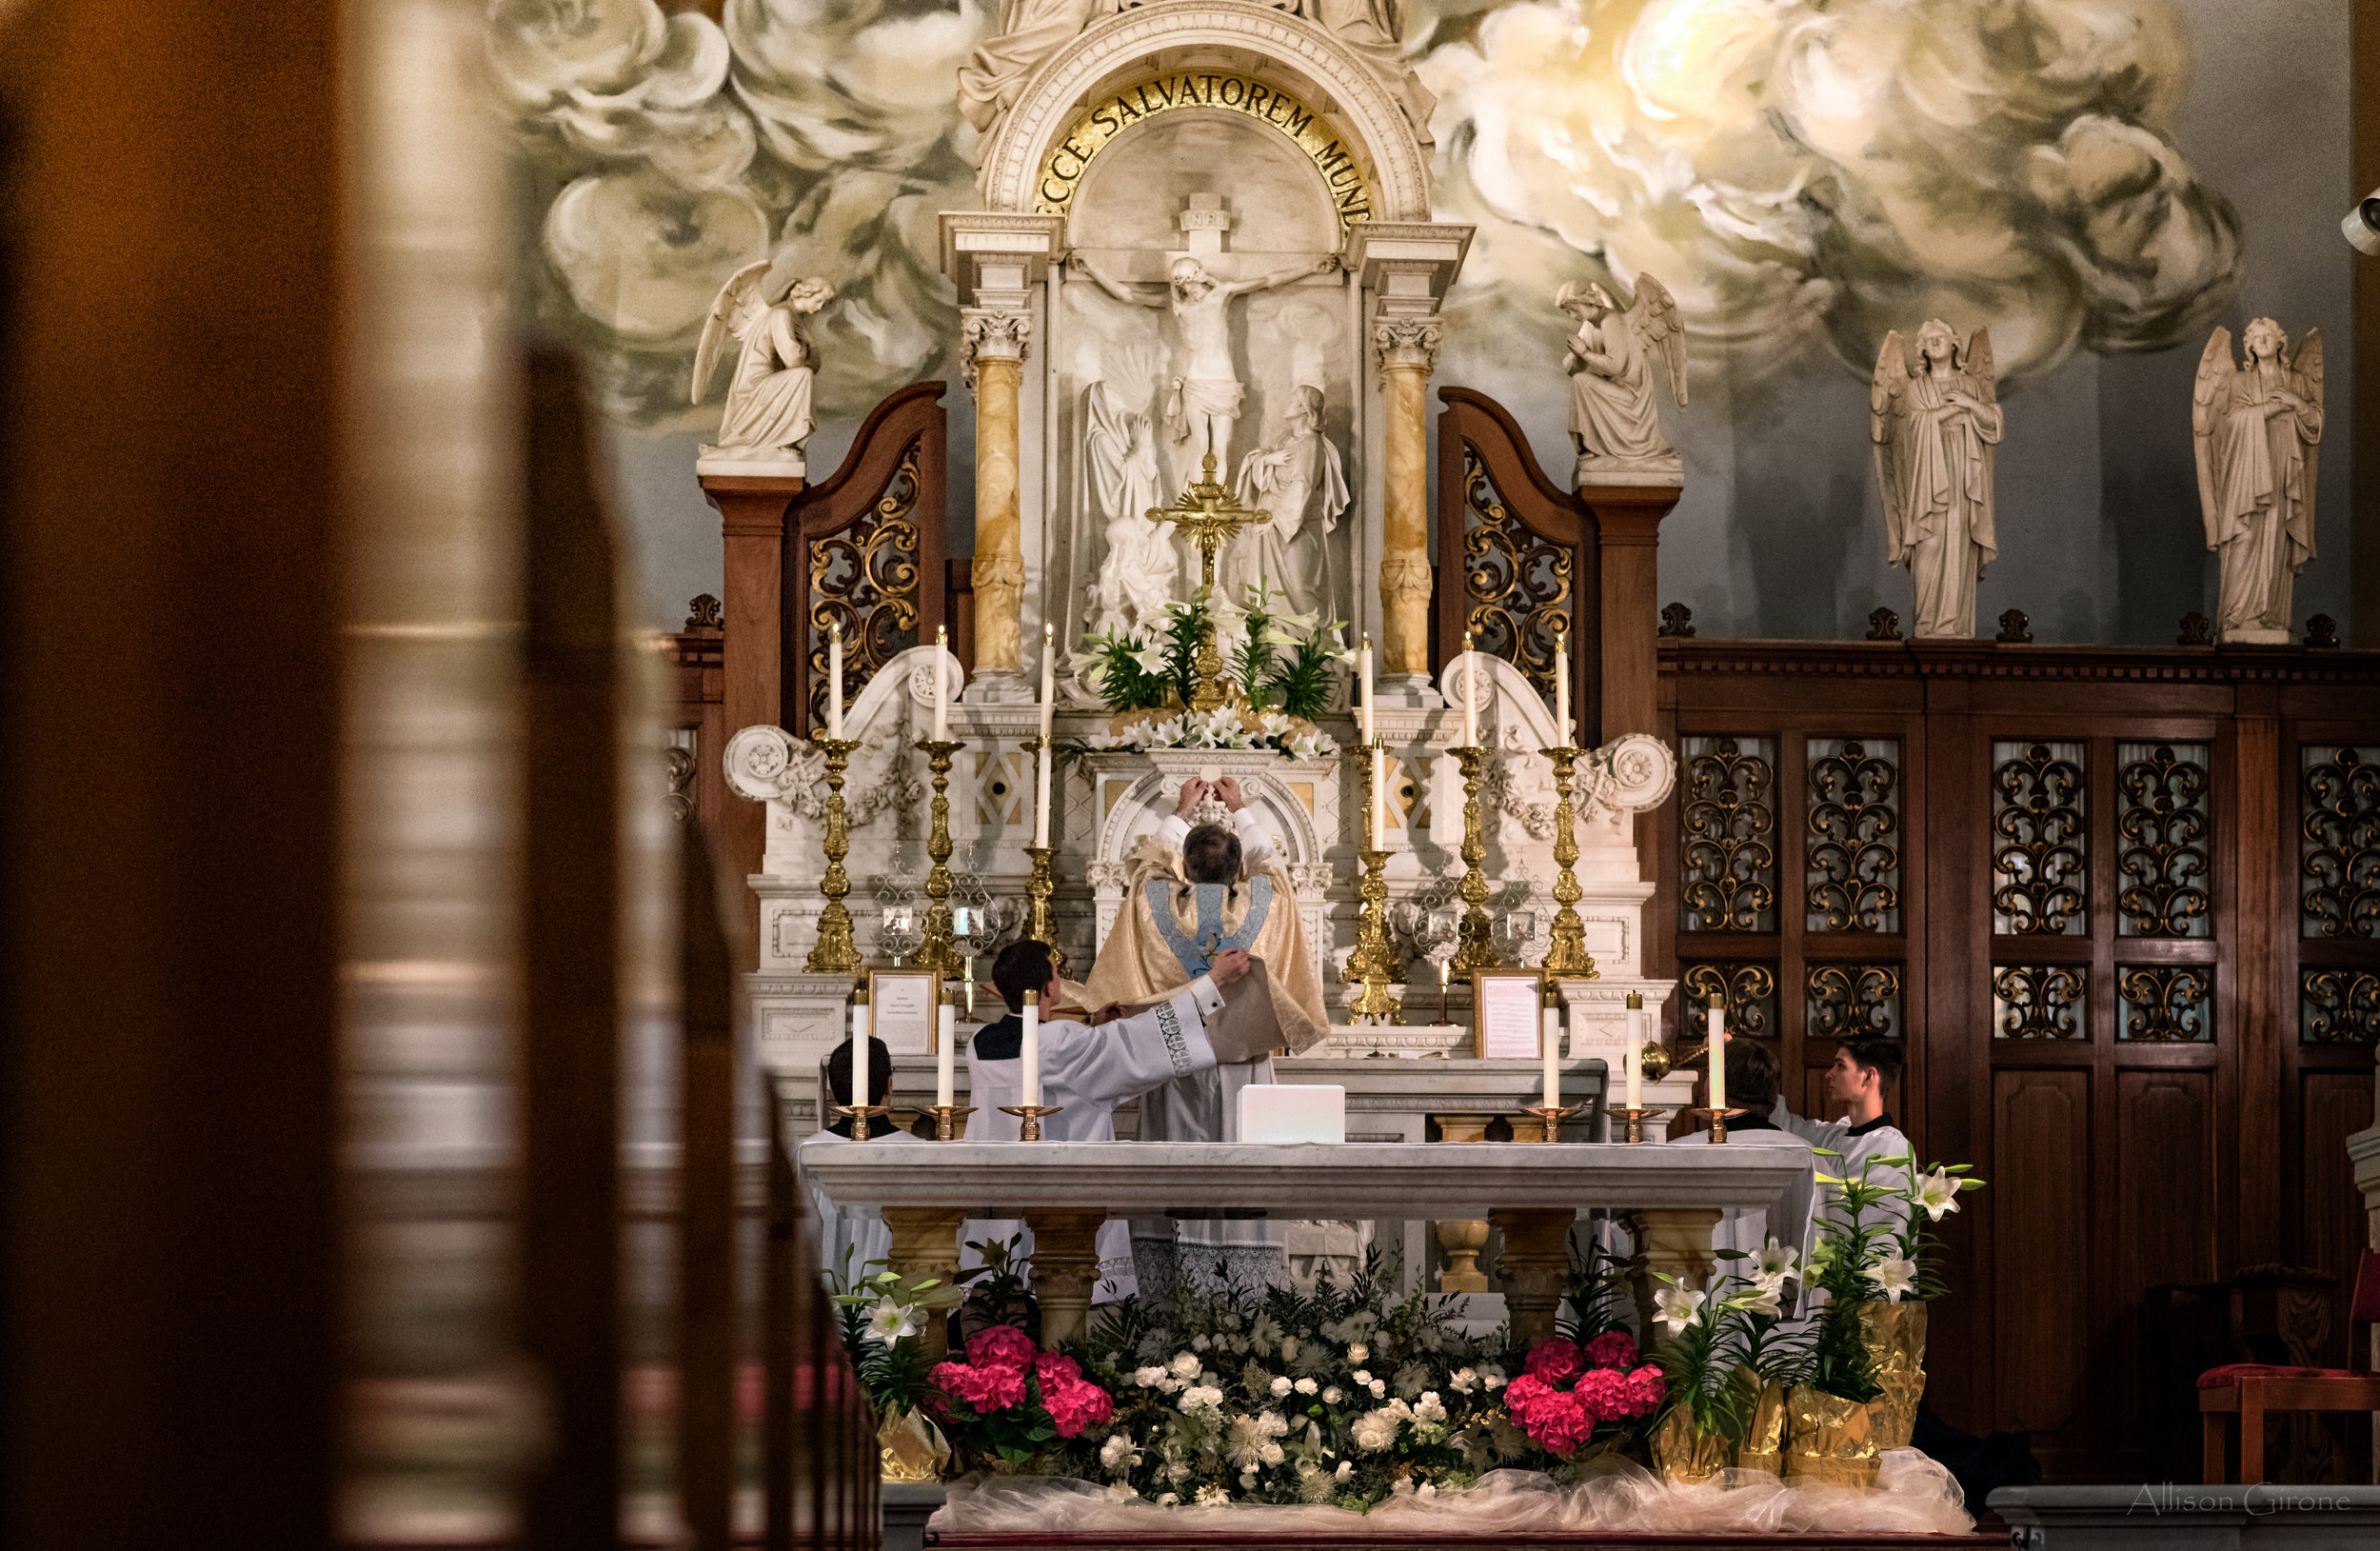 easter Fr. Huffman elevation 2016 st. peters latinmass steuby (1 of 1).jpg